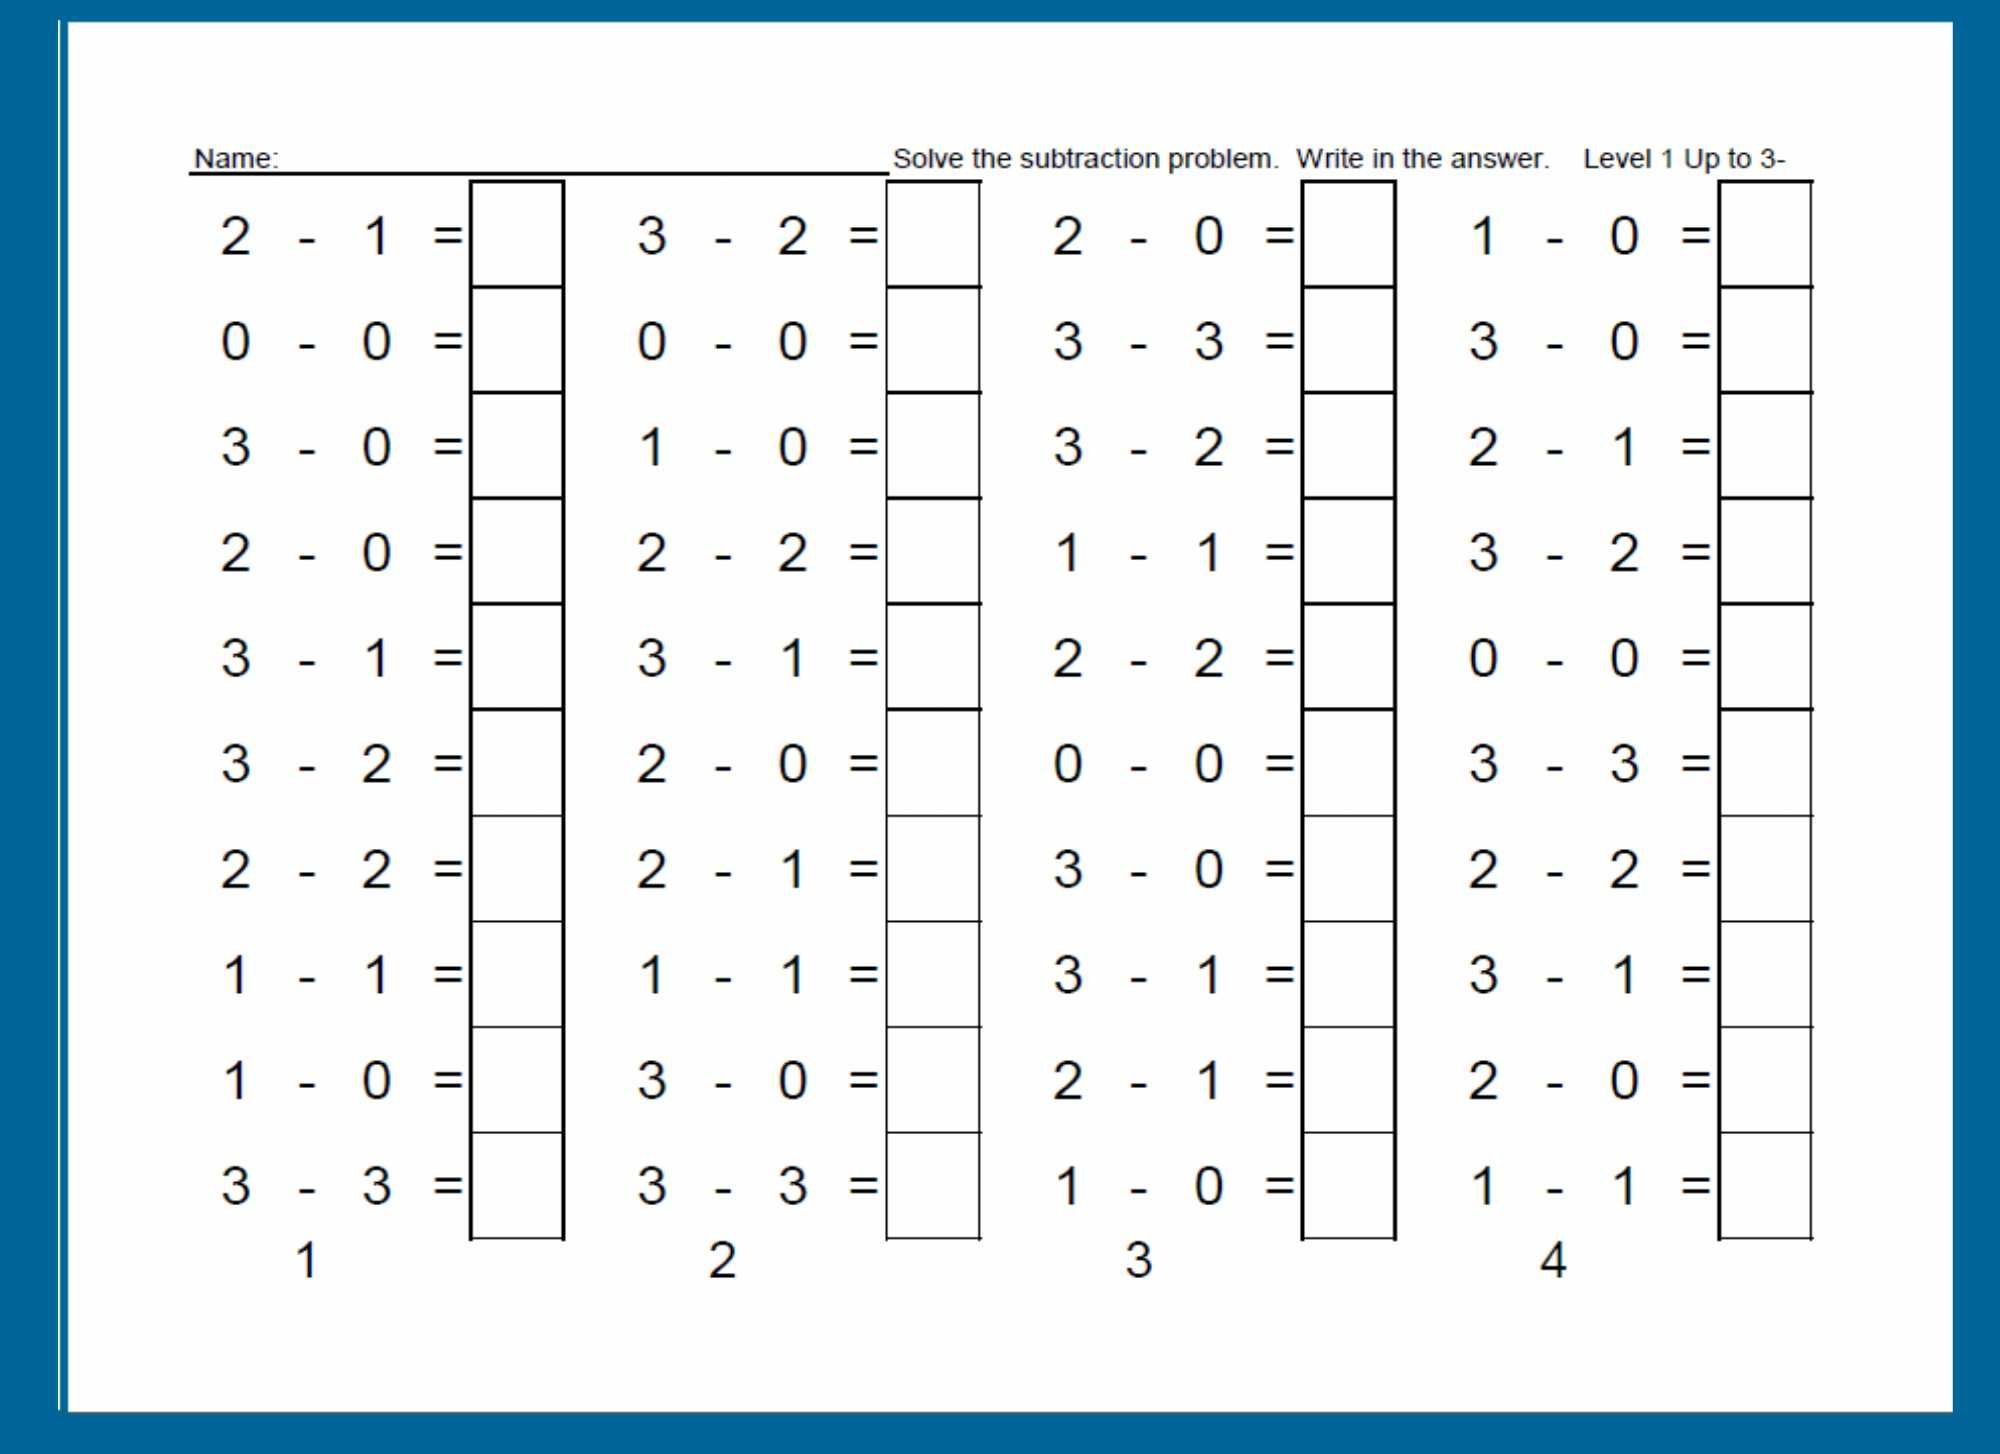 Worksheet For Building Subtraction Fluency One Column A Day Is Completed Part Of Kindergarten